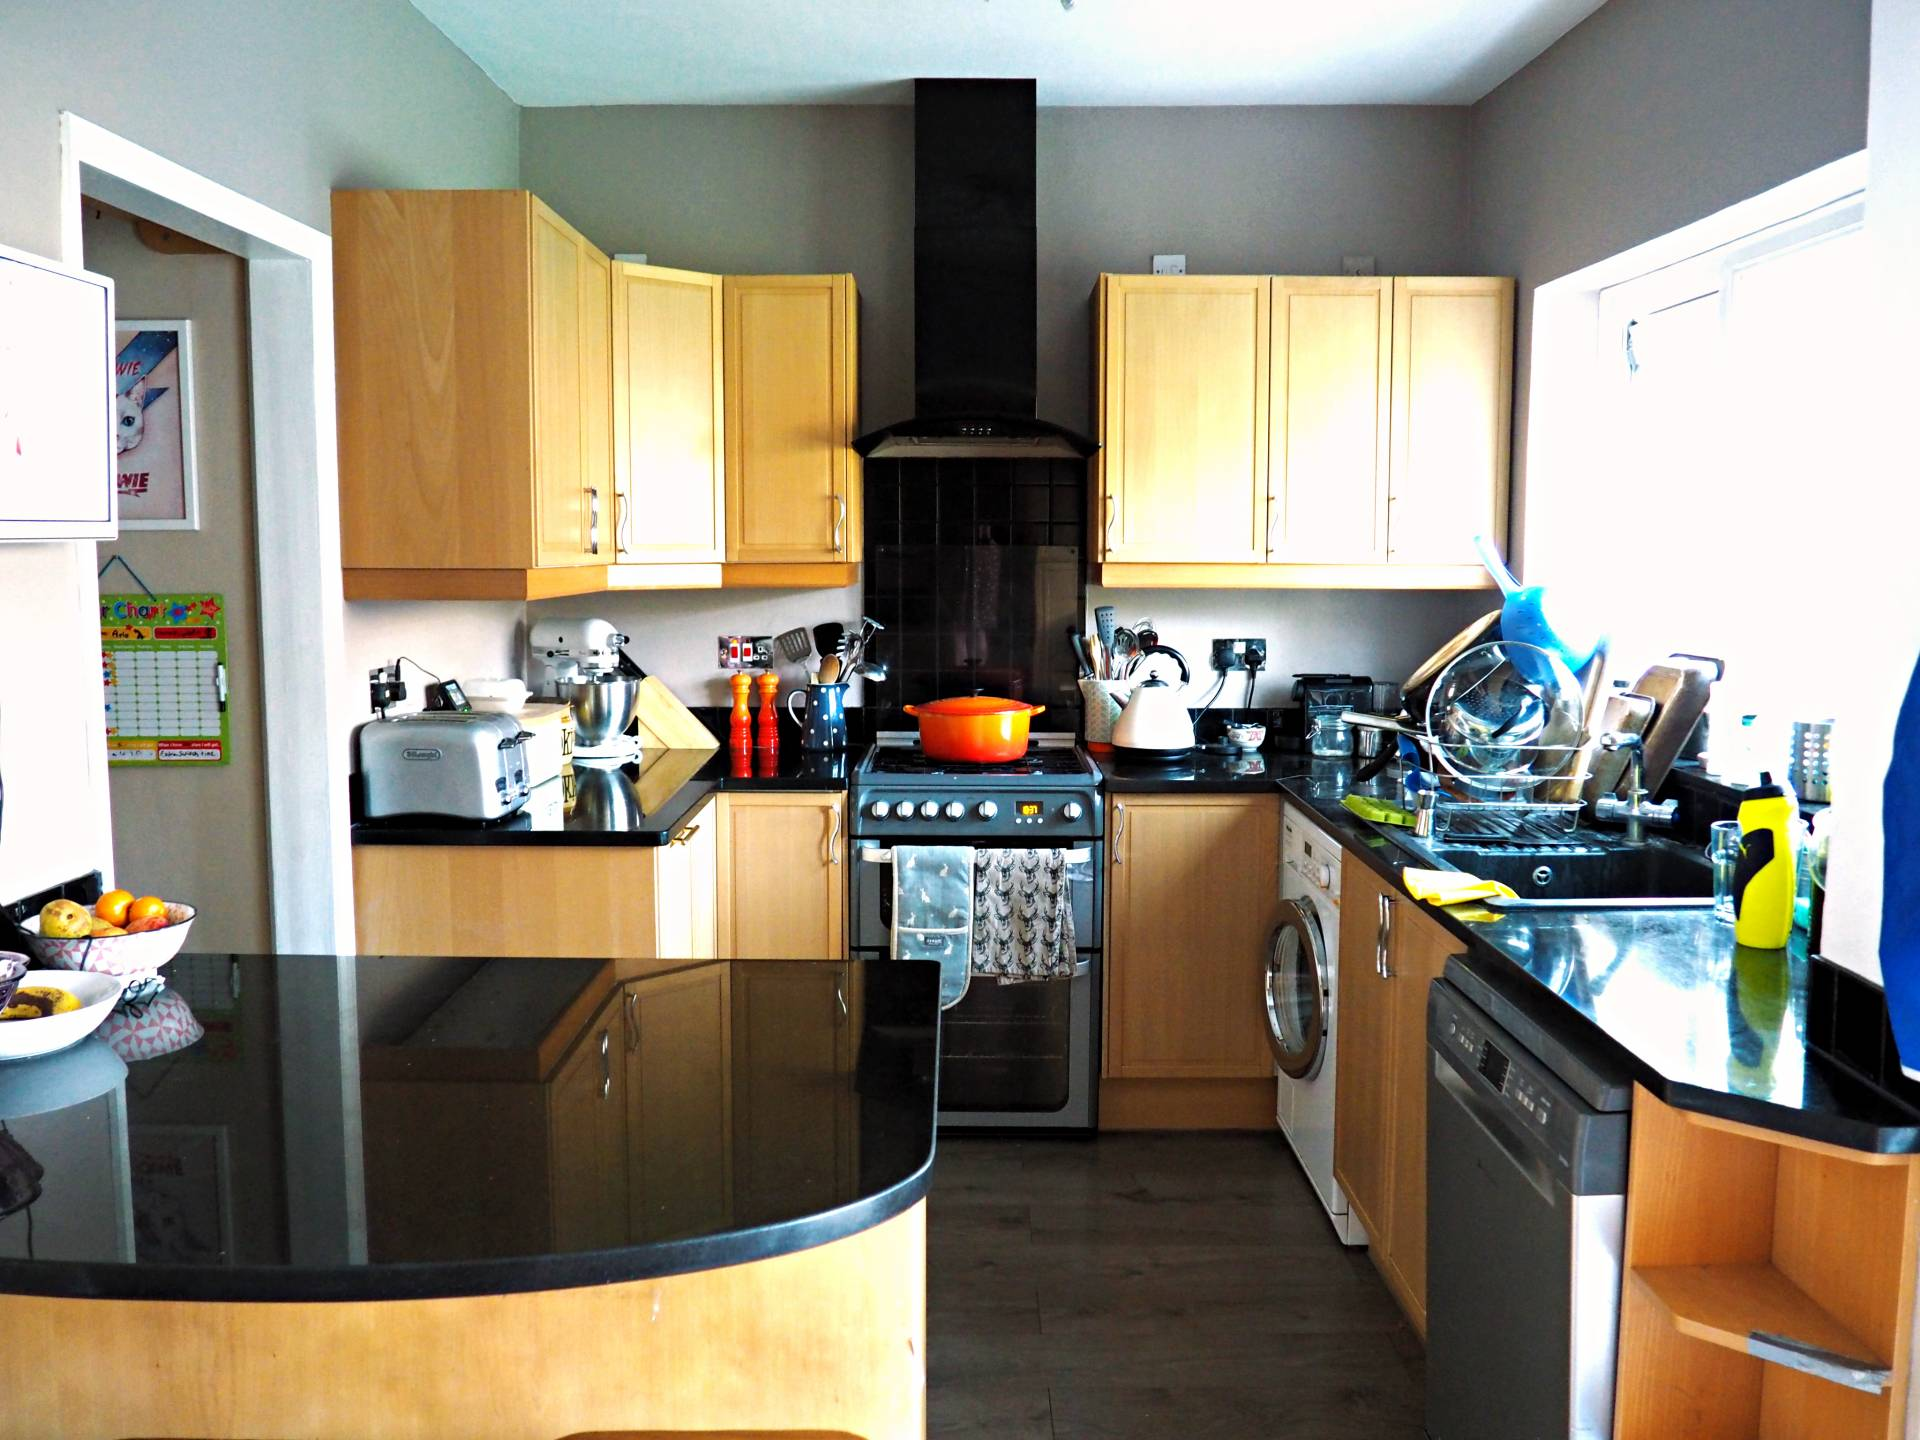 Our Kitchen Upcycle Project – Part 1: The 'Before'